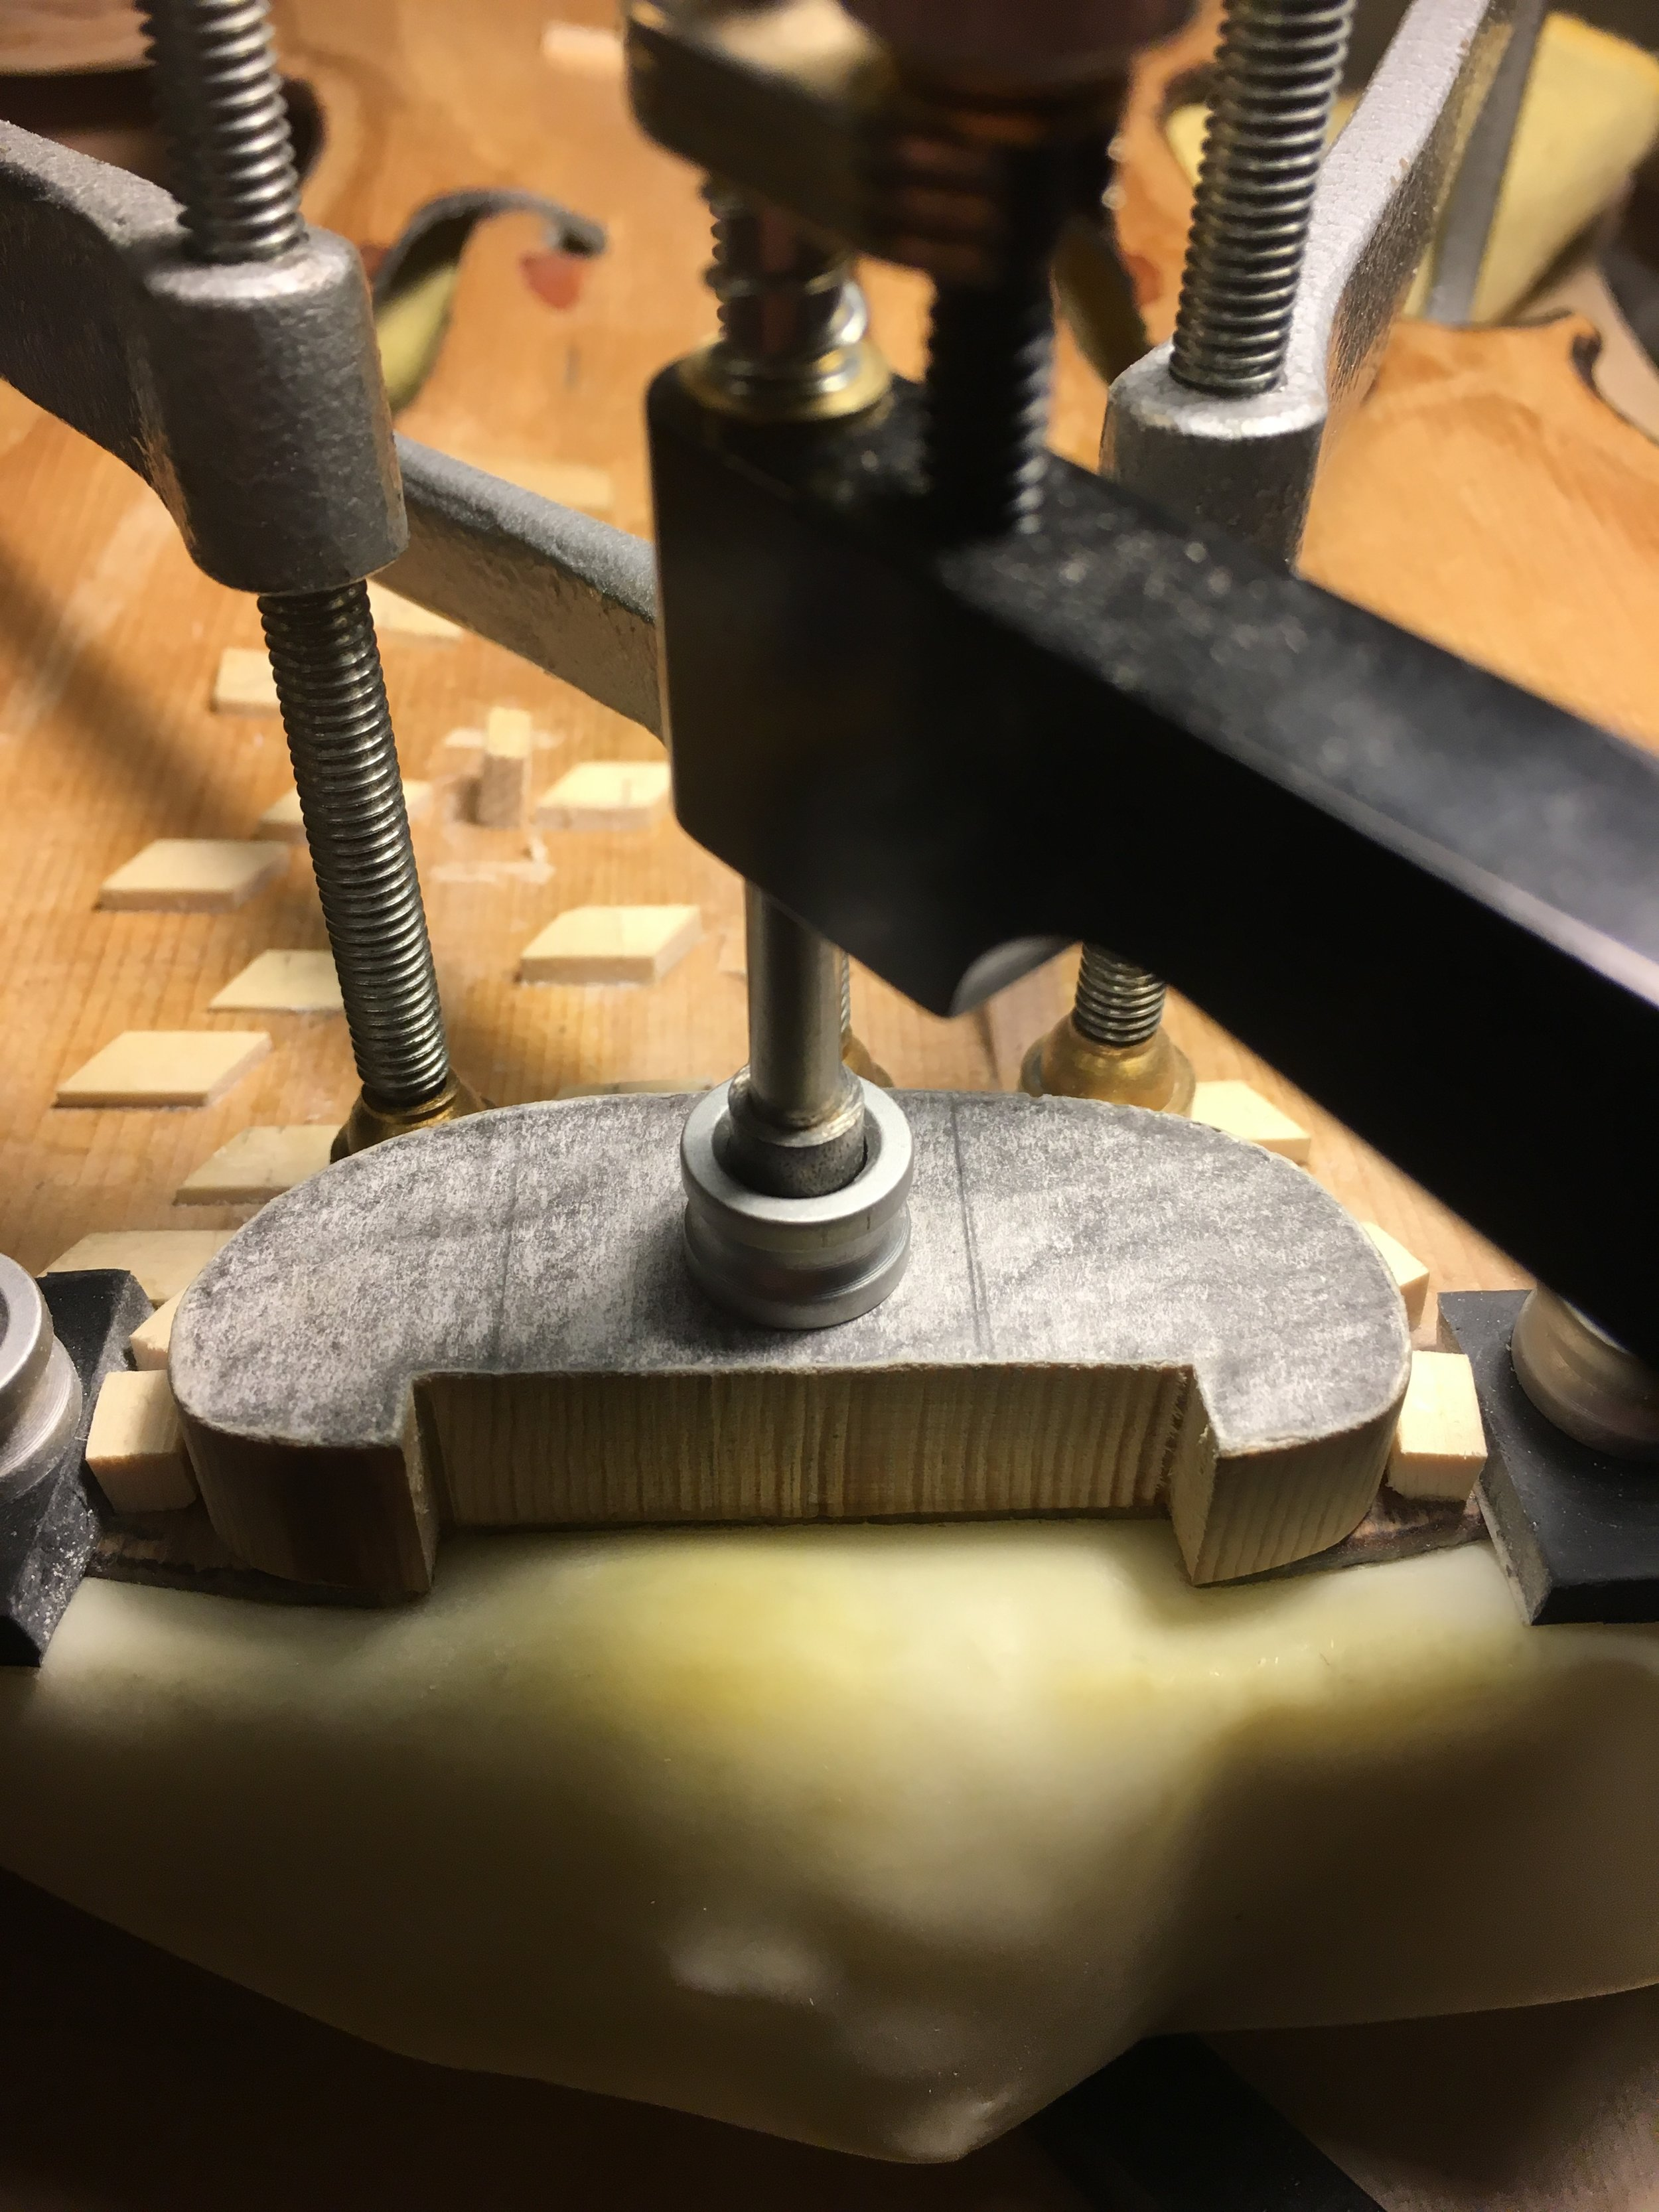 """With the top properly secured in a cast, and temporary cleats precisely aligned to guide the new patch into the bed, this patch is now ready to begin the careful process of """"chalk fitting"""" to achieve a perfect fit."""